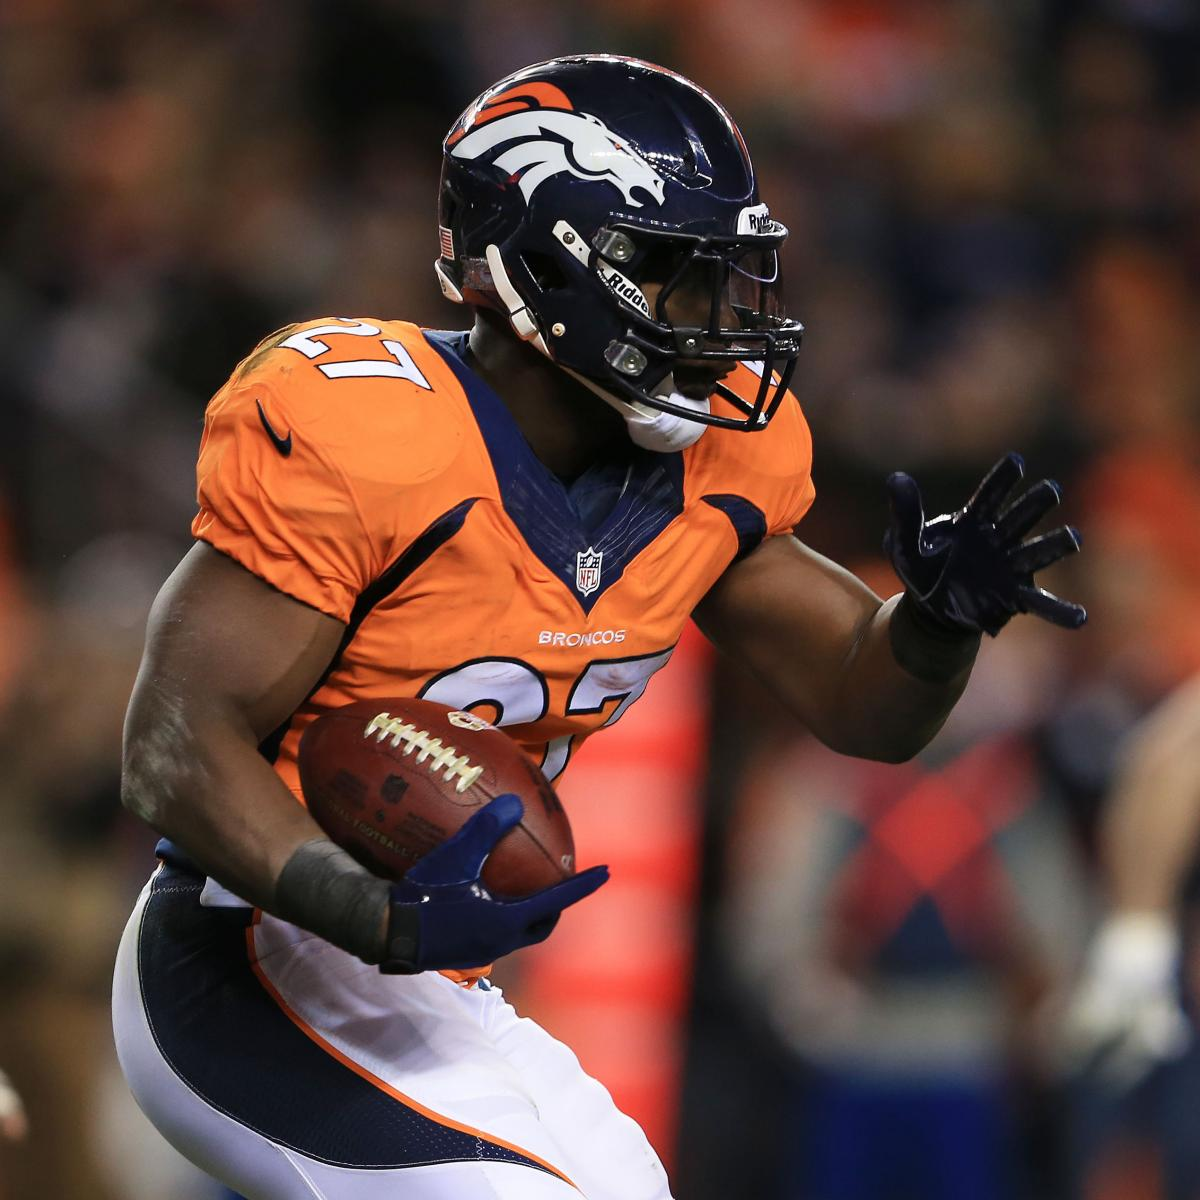 Denver To Hawaii: Why Knowshon Moreno's Resurgence Is Key To A Denver